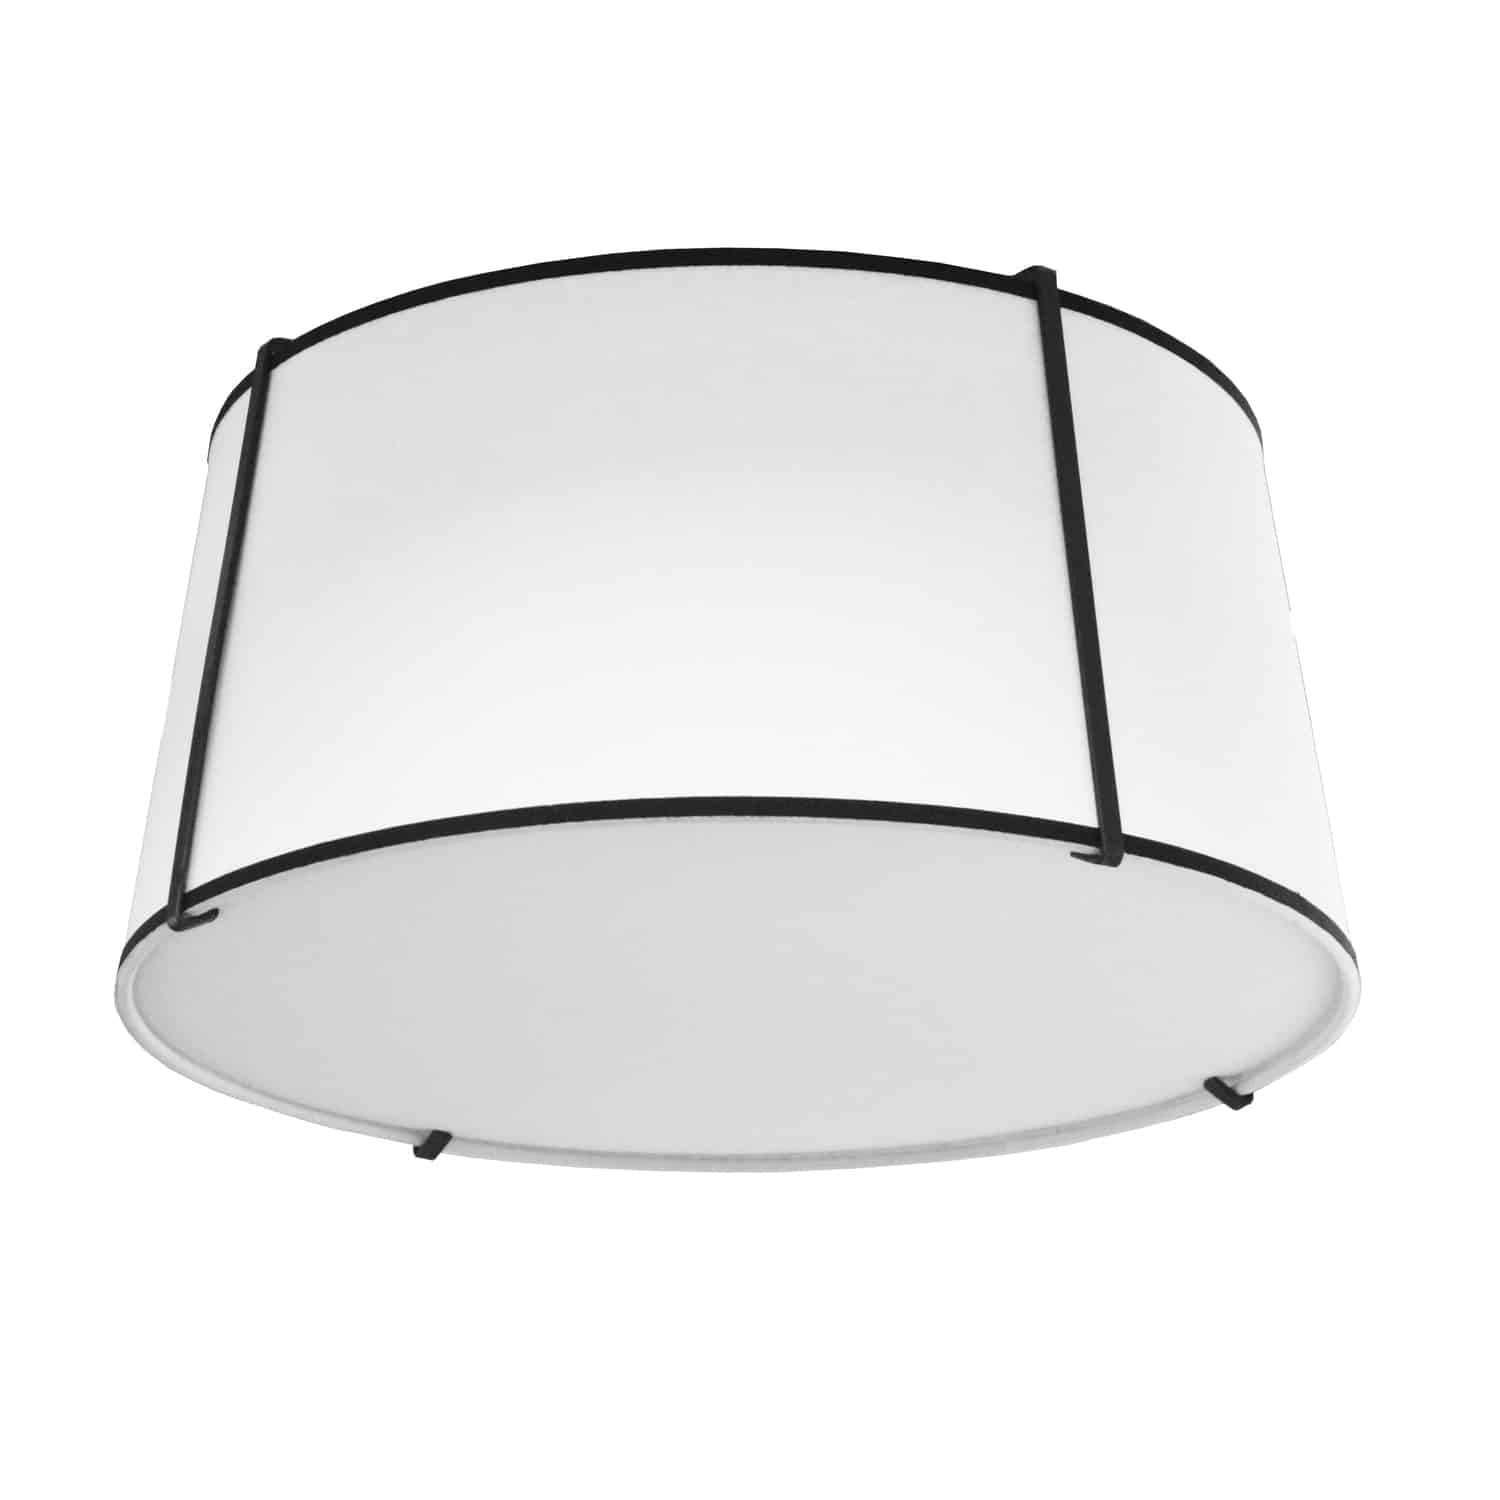 3 Light Trapezoid Flush Mount Black White Shade with 790 Diffuser